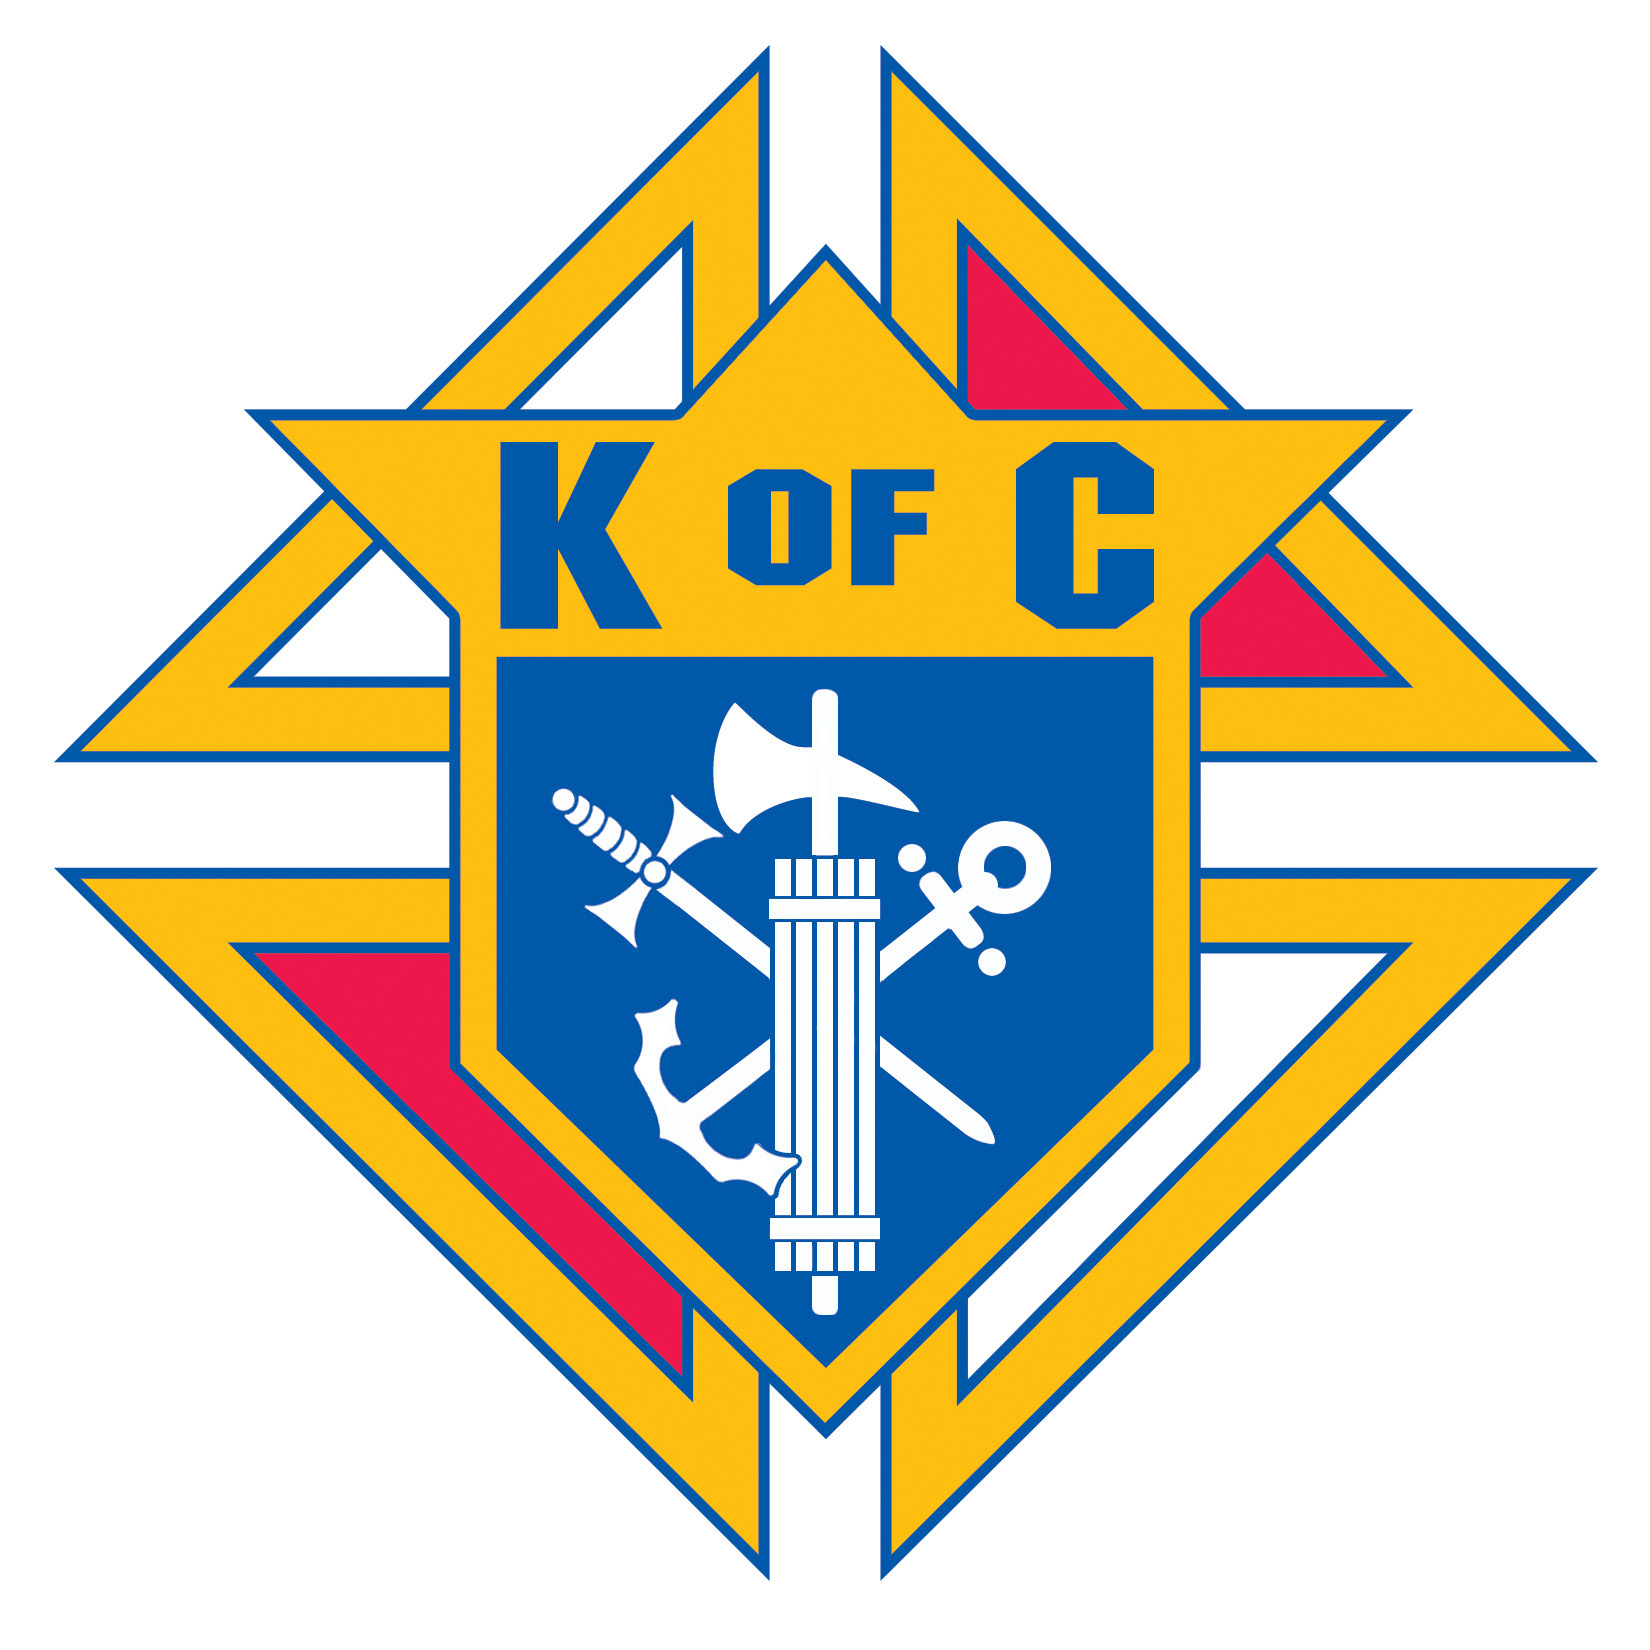 St anthony parish knights of columbus knights of columbus biocorpaavc